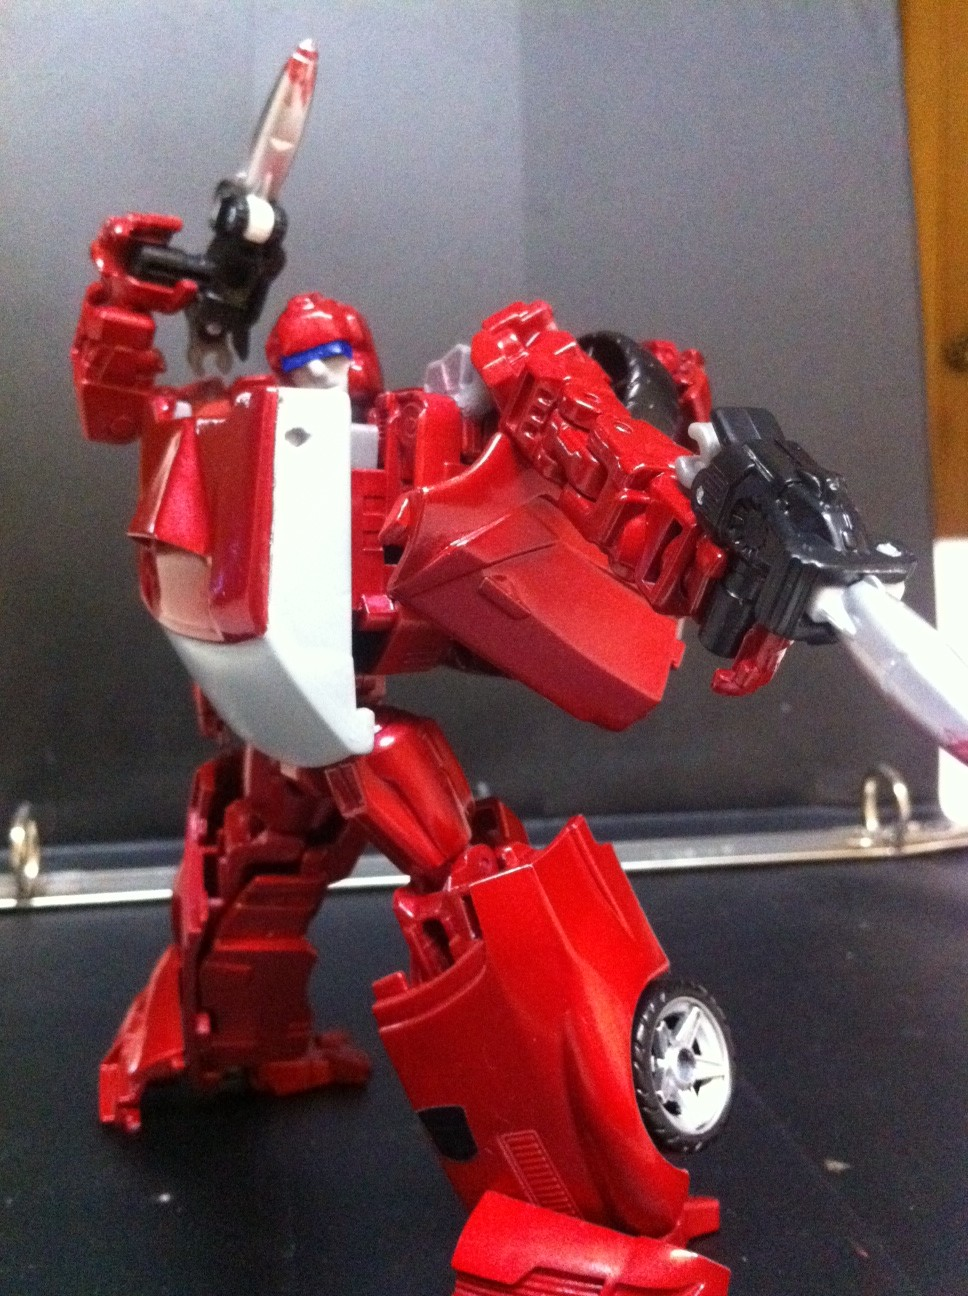 Rts lightspeed technobots-photo-3.jpg